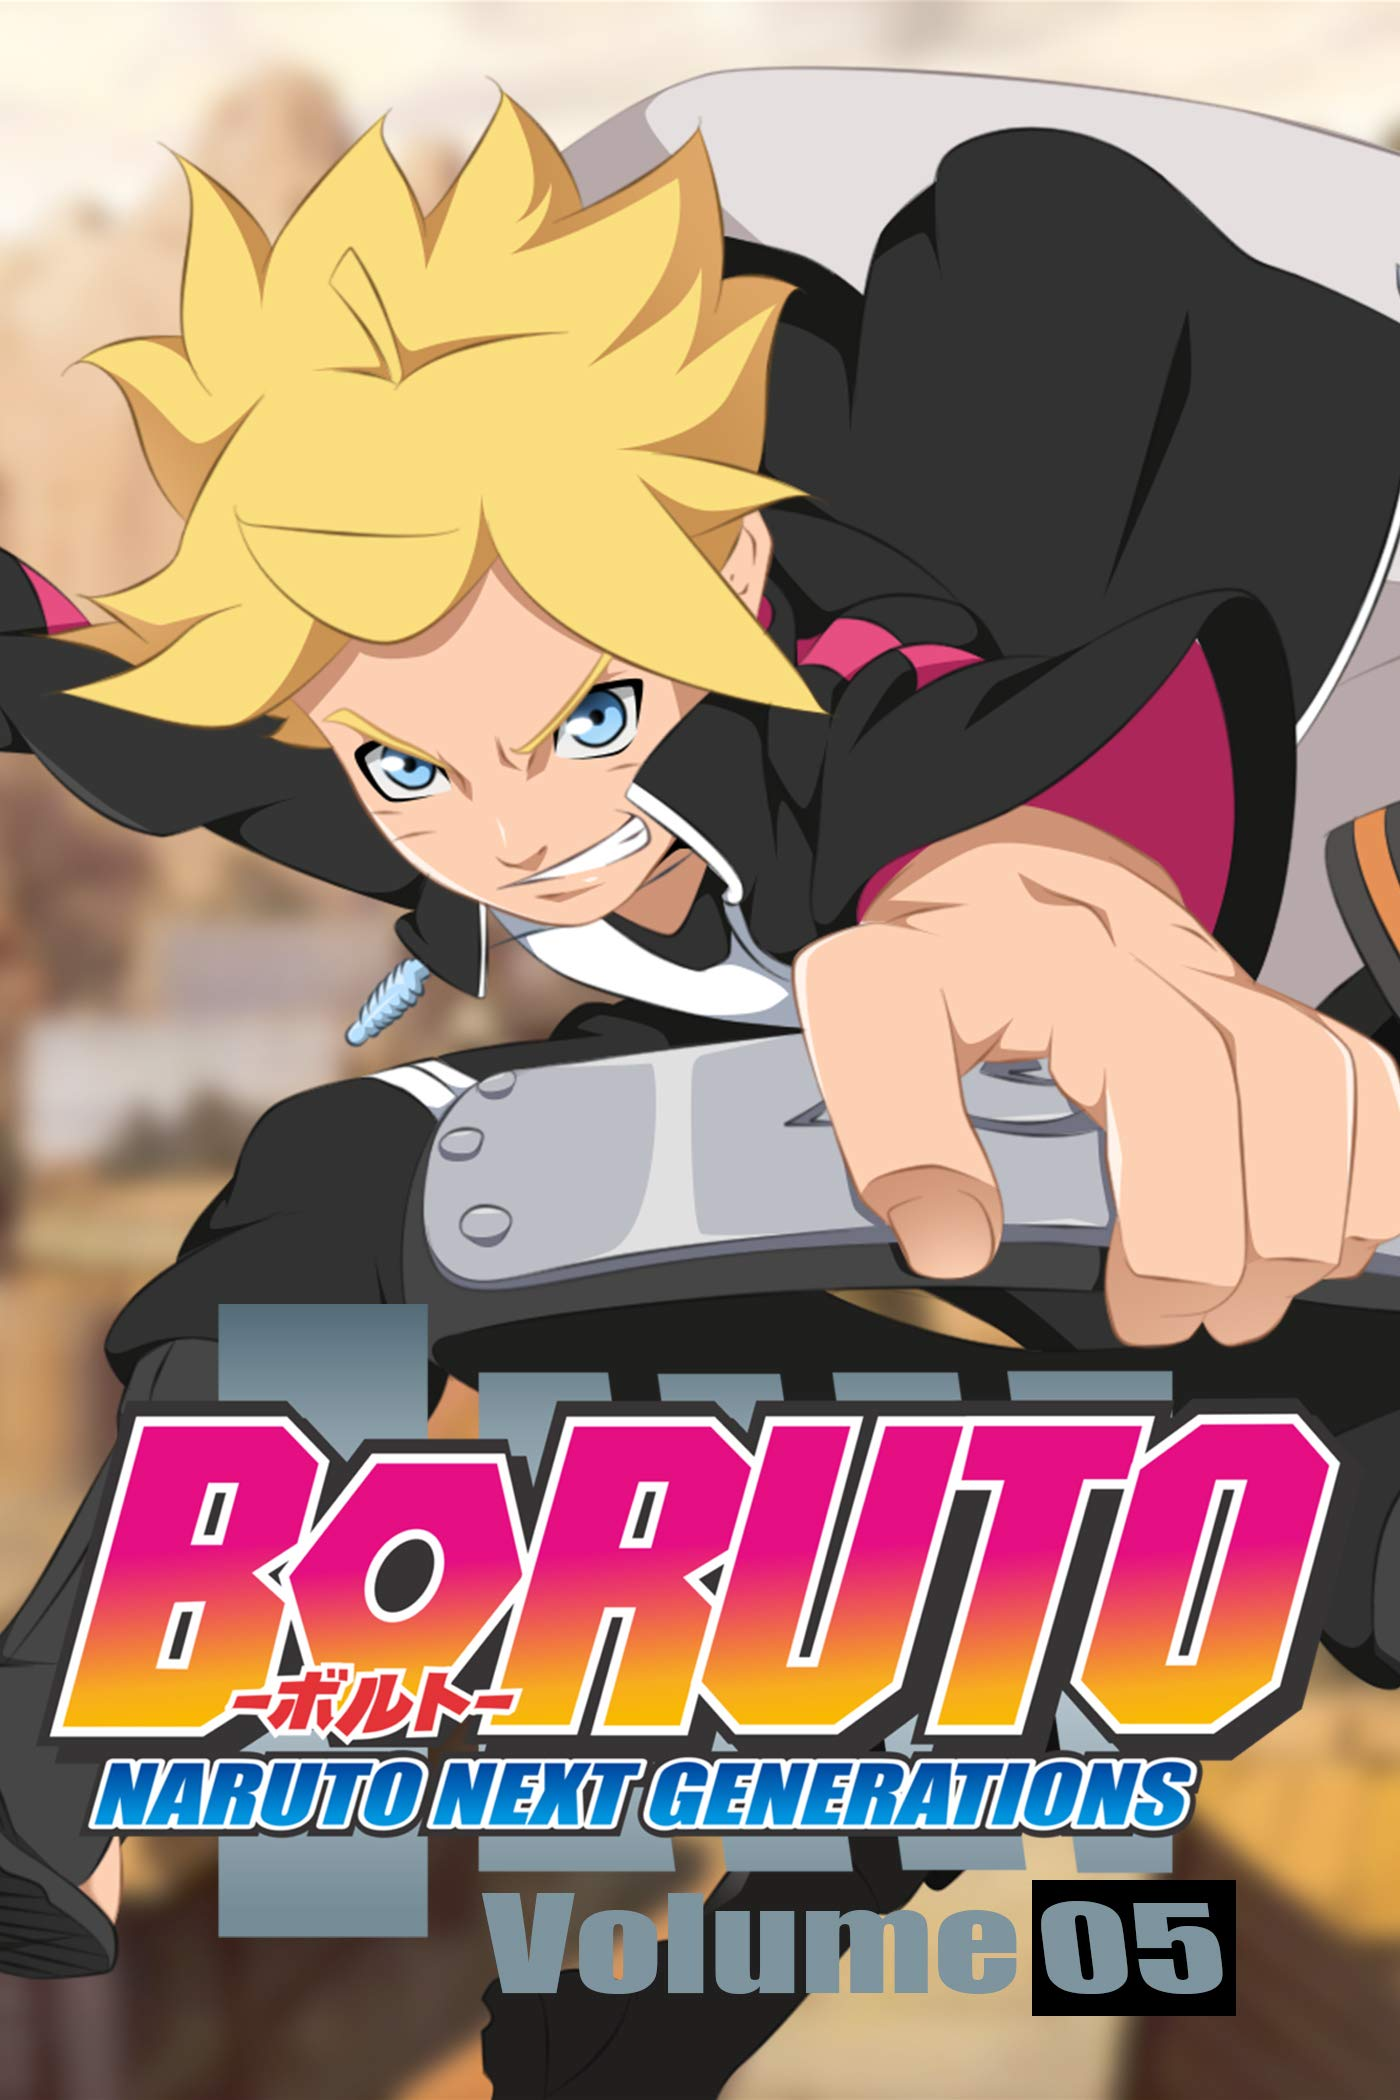 New Collection manga of year: Boruto: Naruto Next Generations vol 5